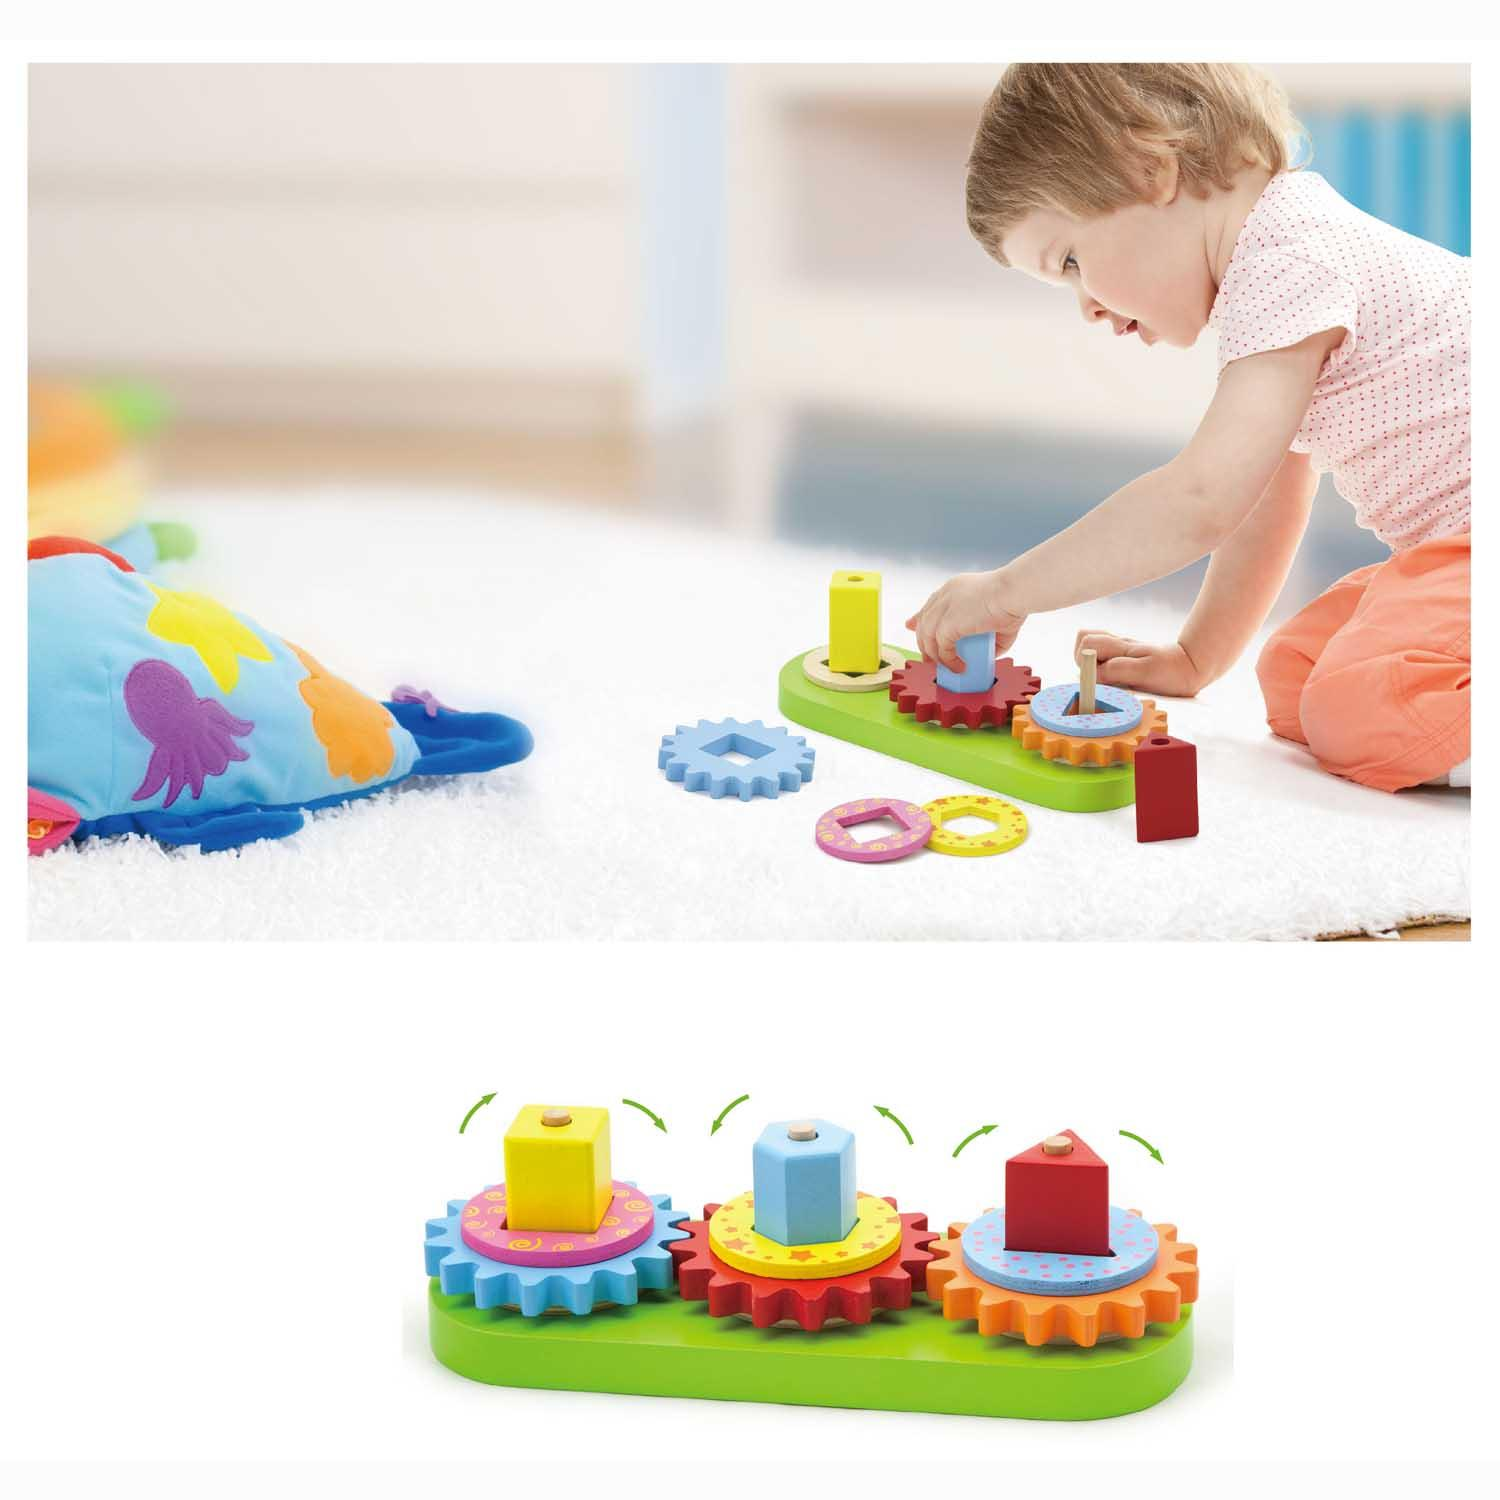 Stacking Toy Puzzles : Wooden turning gears stacking rings shape sorting activity